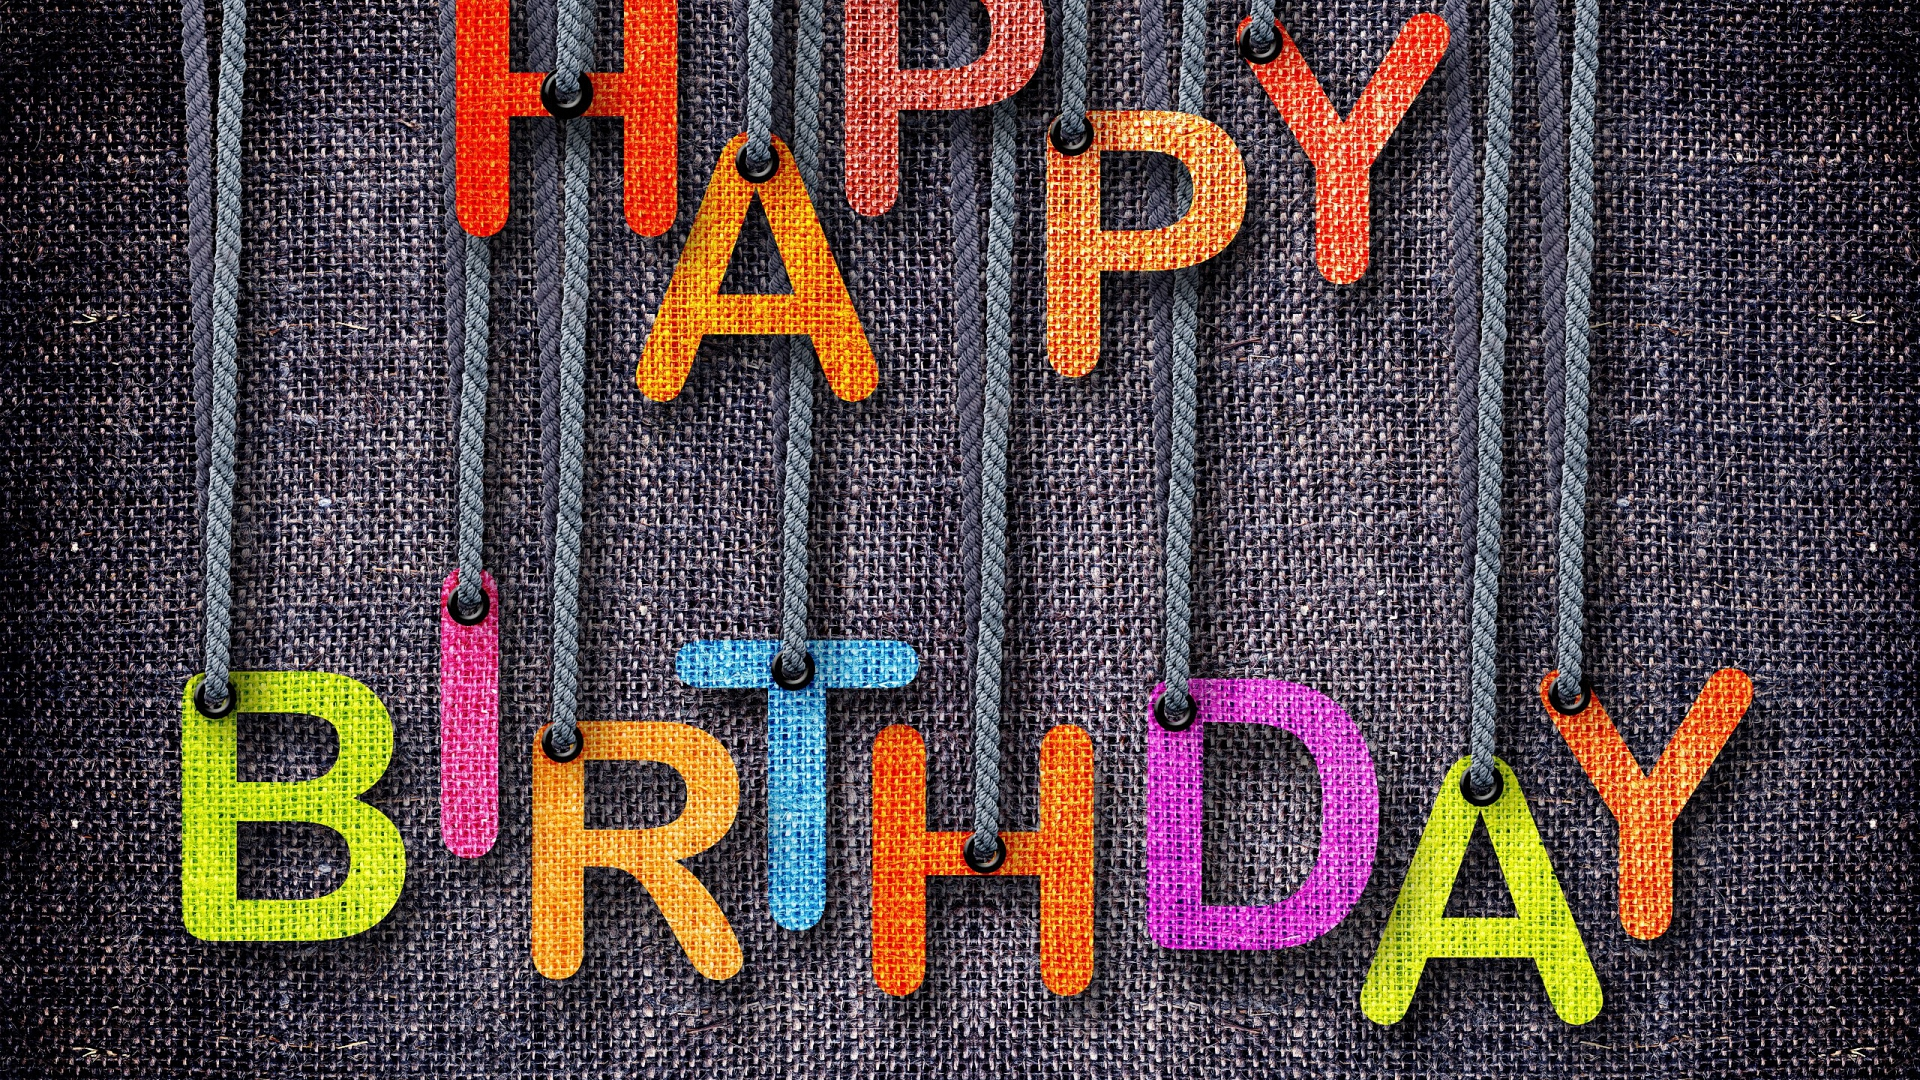 happy birthday images hd 1080p ; hd-wallpapers-1080p-3s-4ttfe-1920x1080